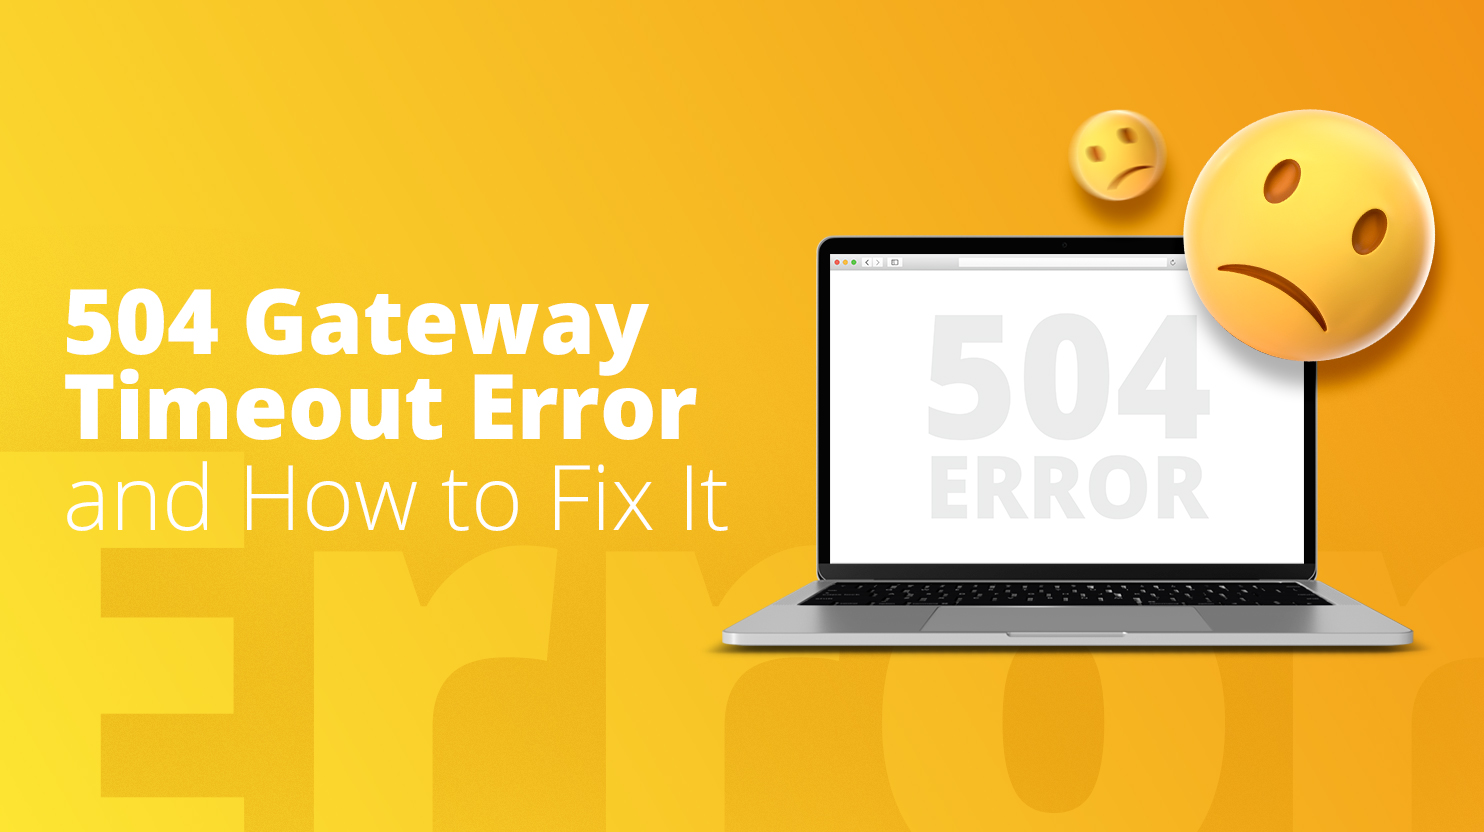 504 Gateway Timeout Error and How to Fix It